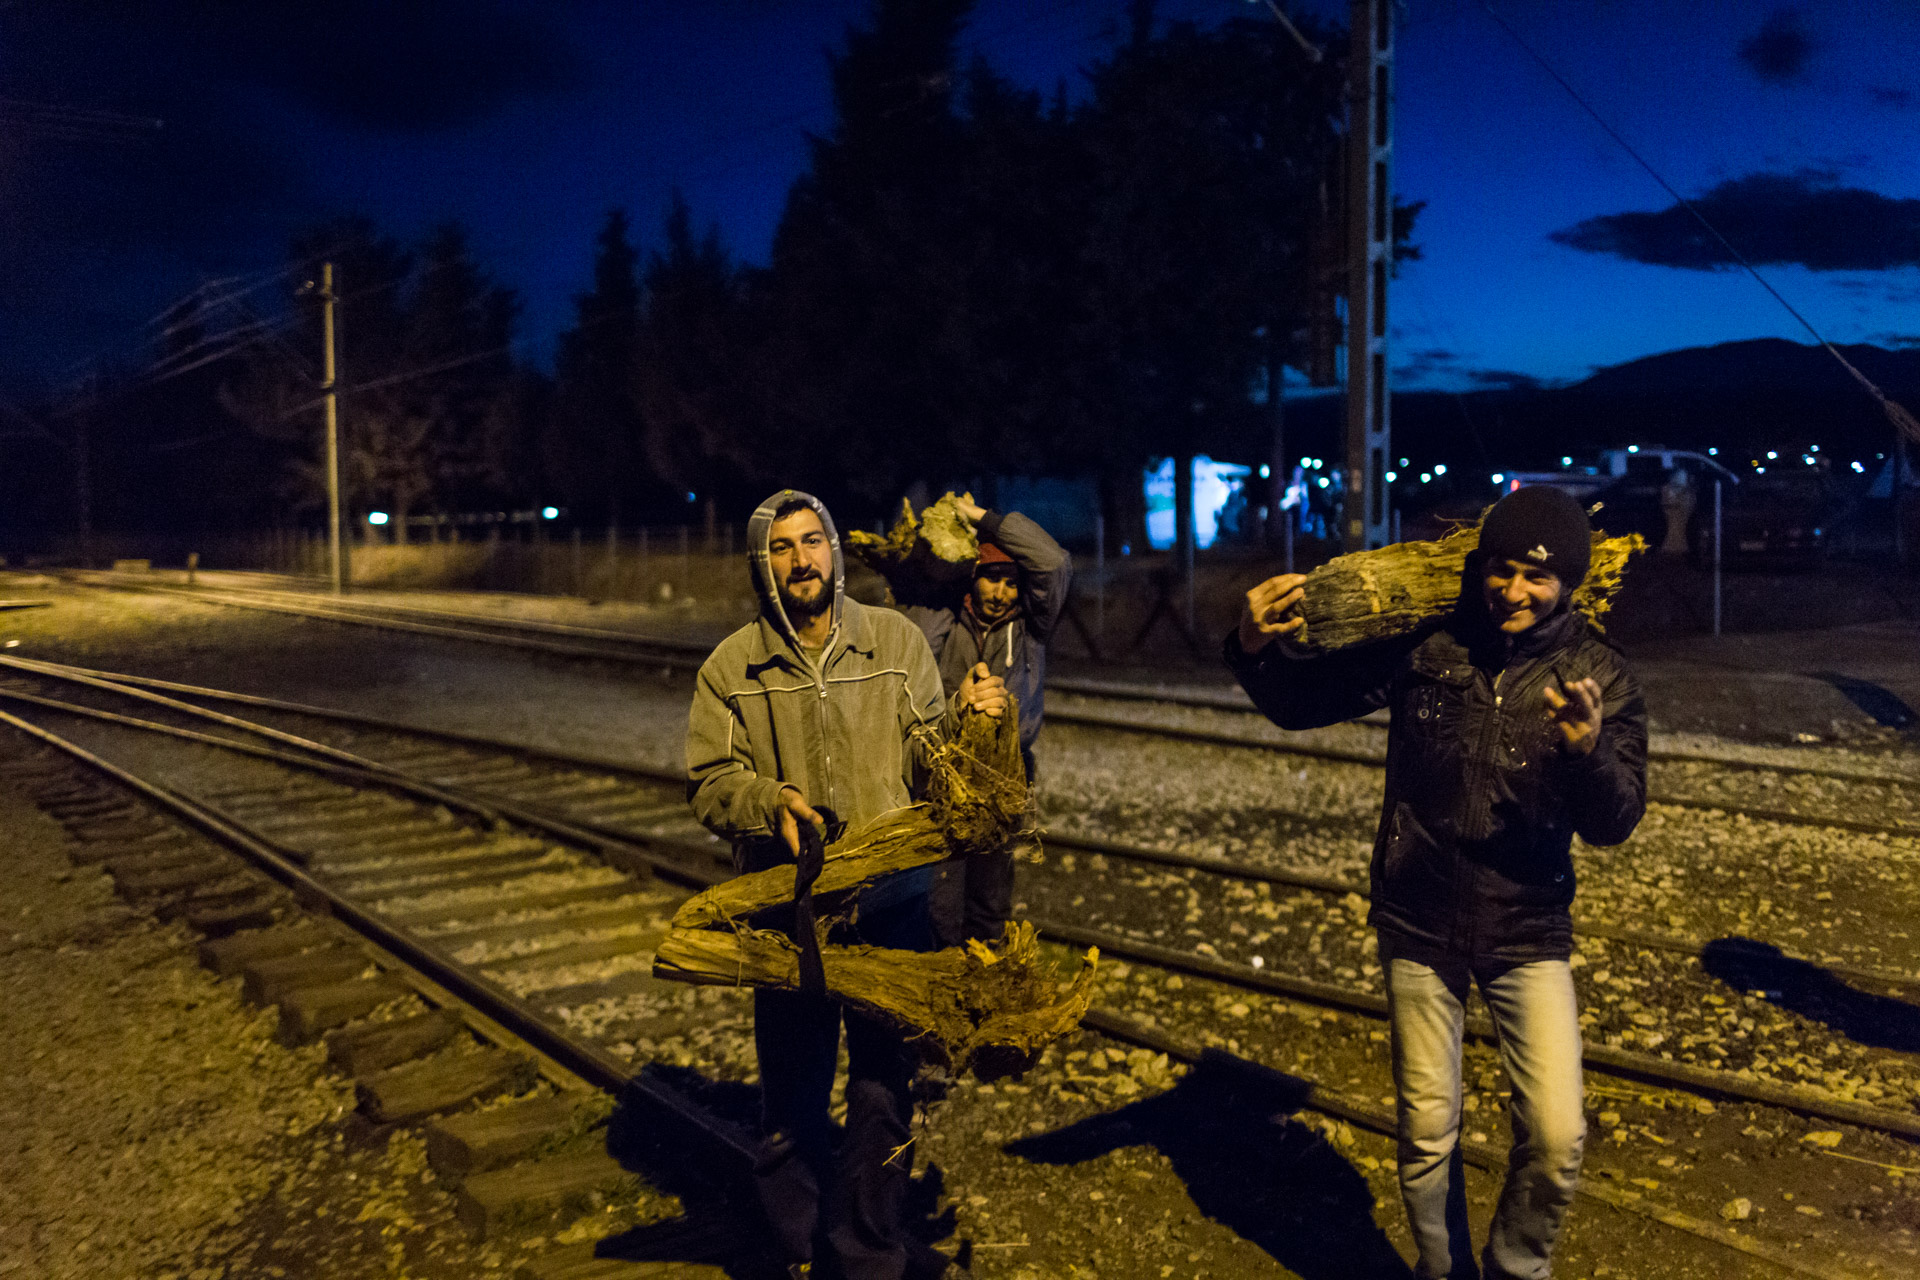 The nights in Idomeni were cold as 2 degrees Celsius sometimes, so fire is an important source of warmth. Every evening, Basem, Ahmad and Mohammad go searching for fire wood.